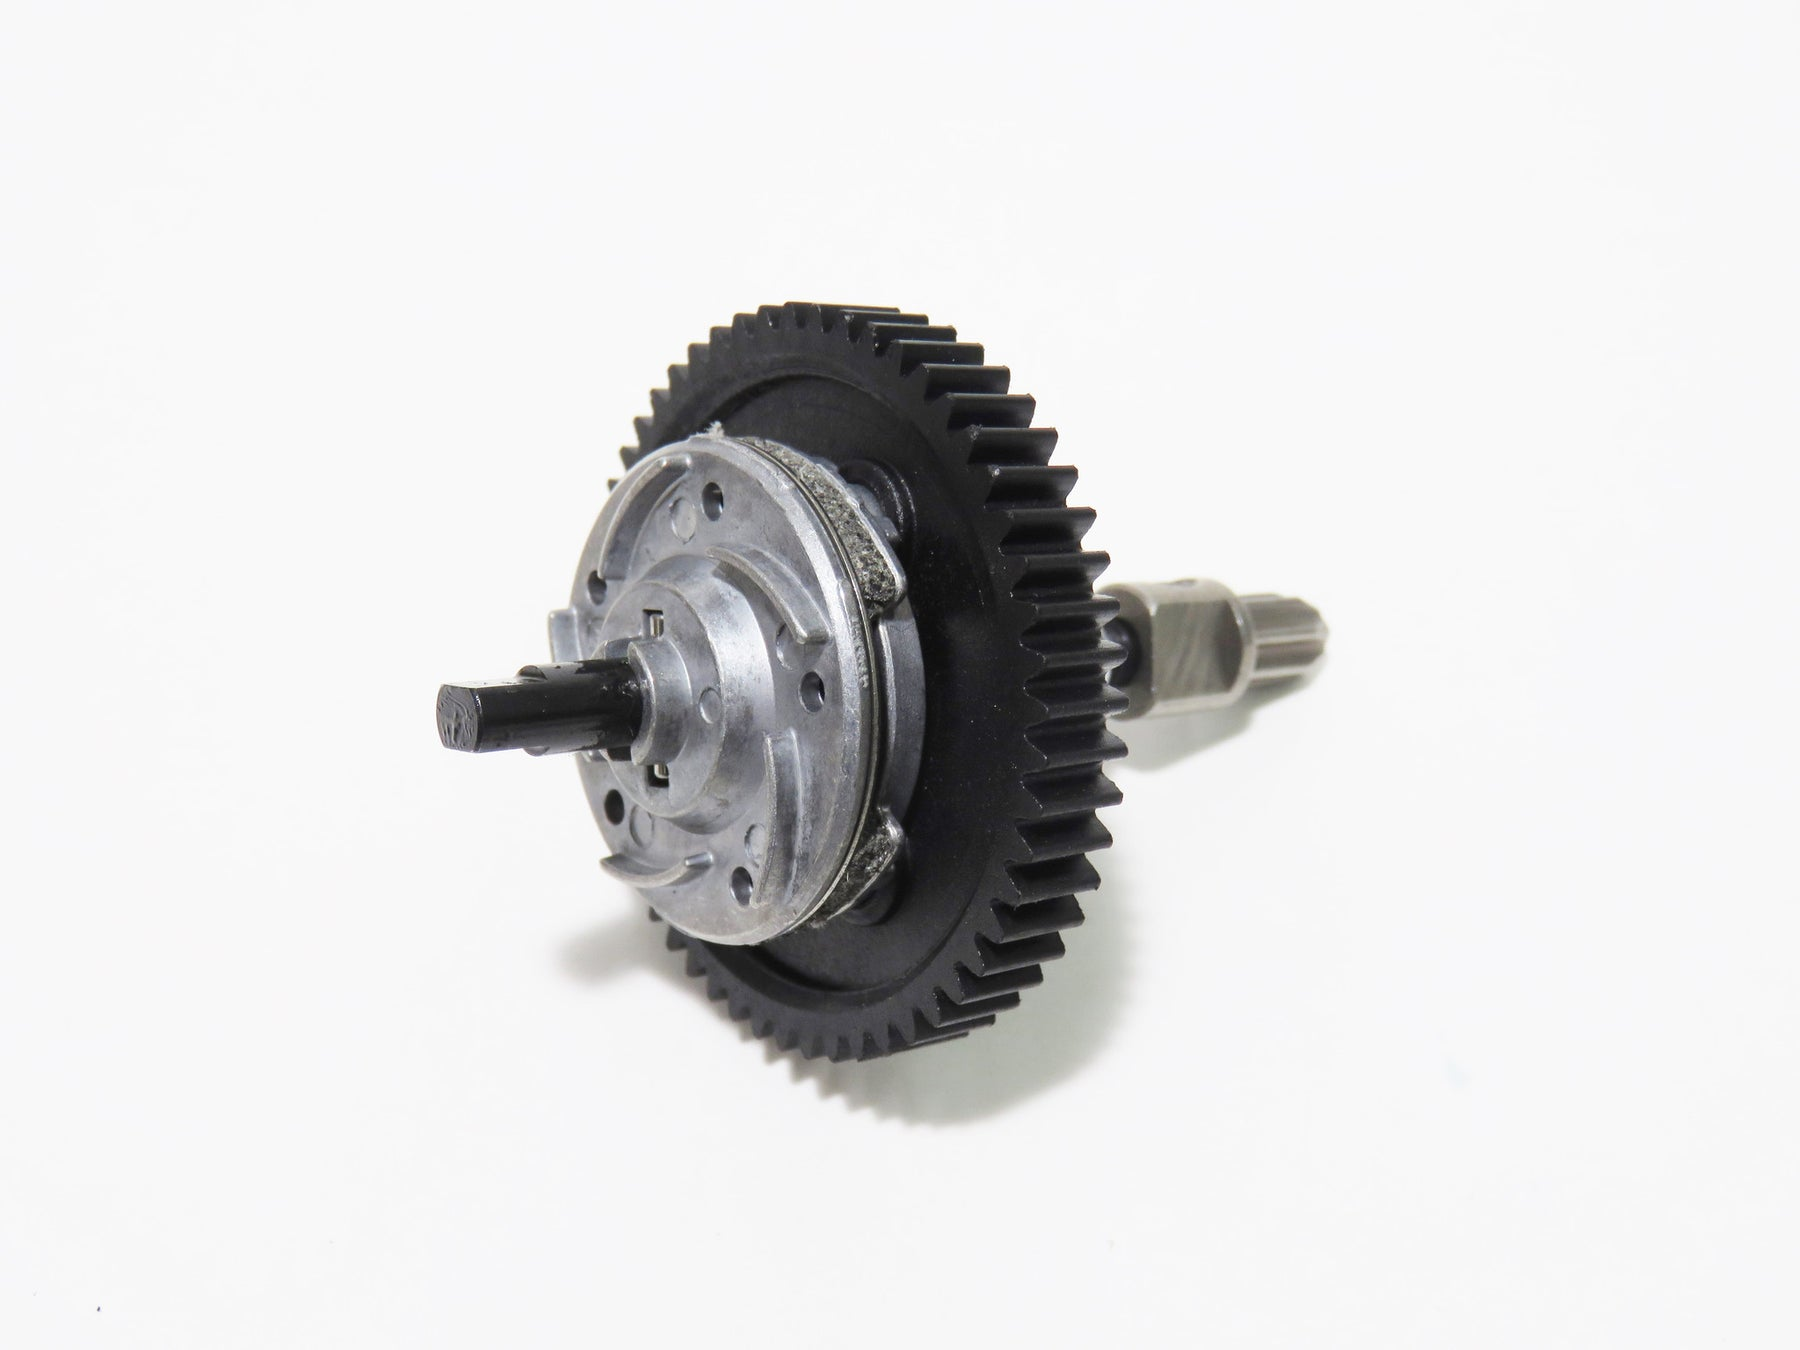 Traxxas Slash 4x4 Slipper clutch Spur Gear Gear Hub Drive Hub